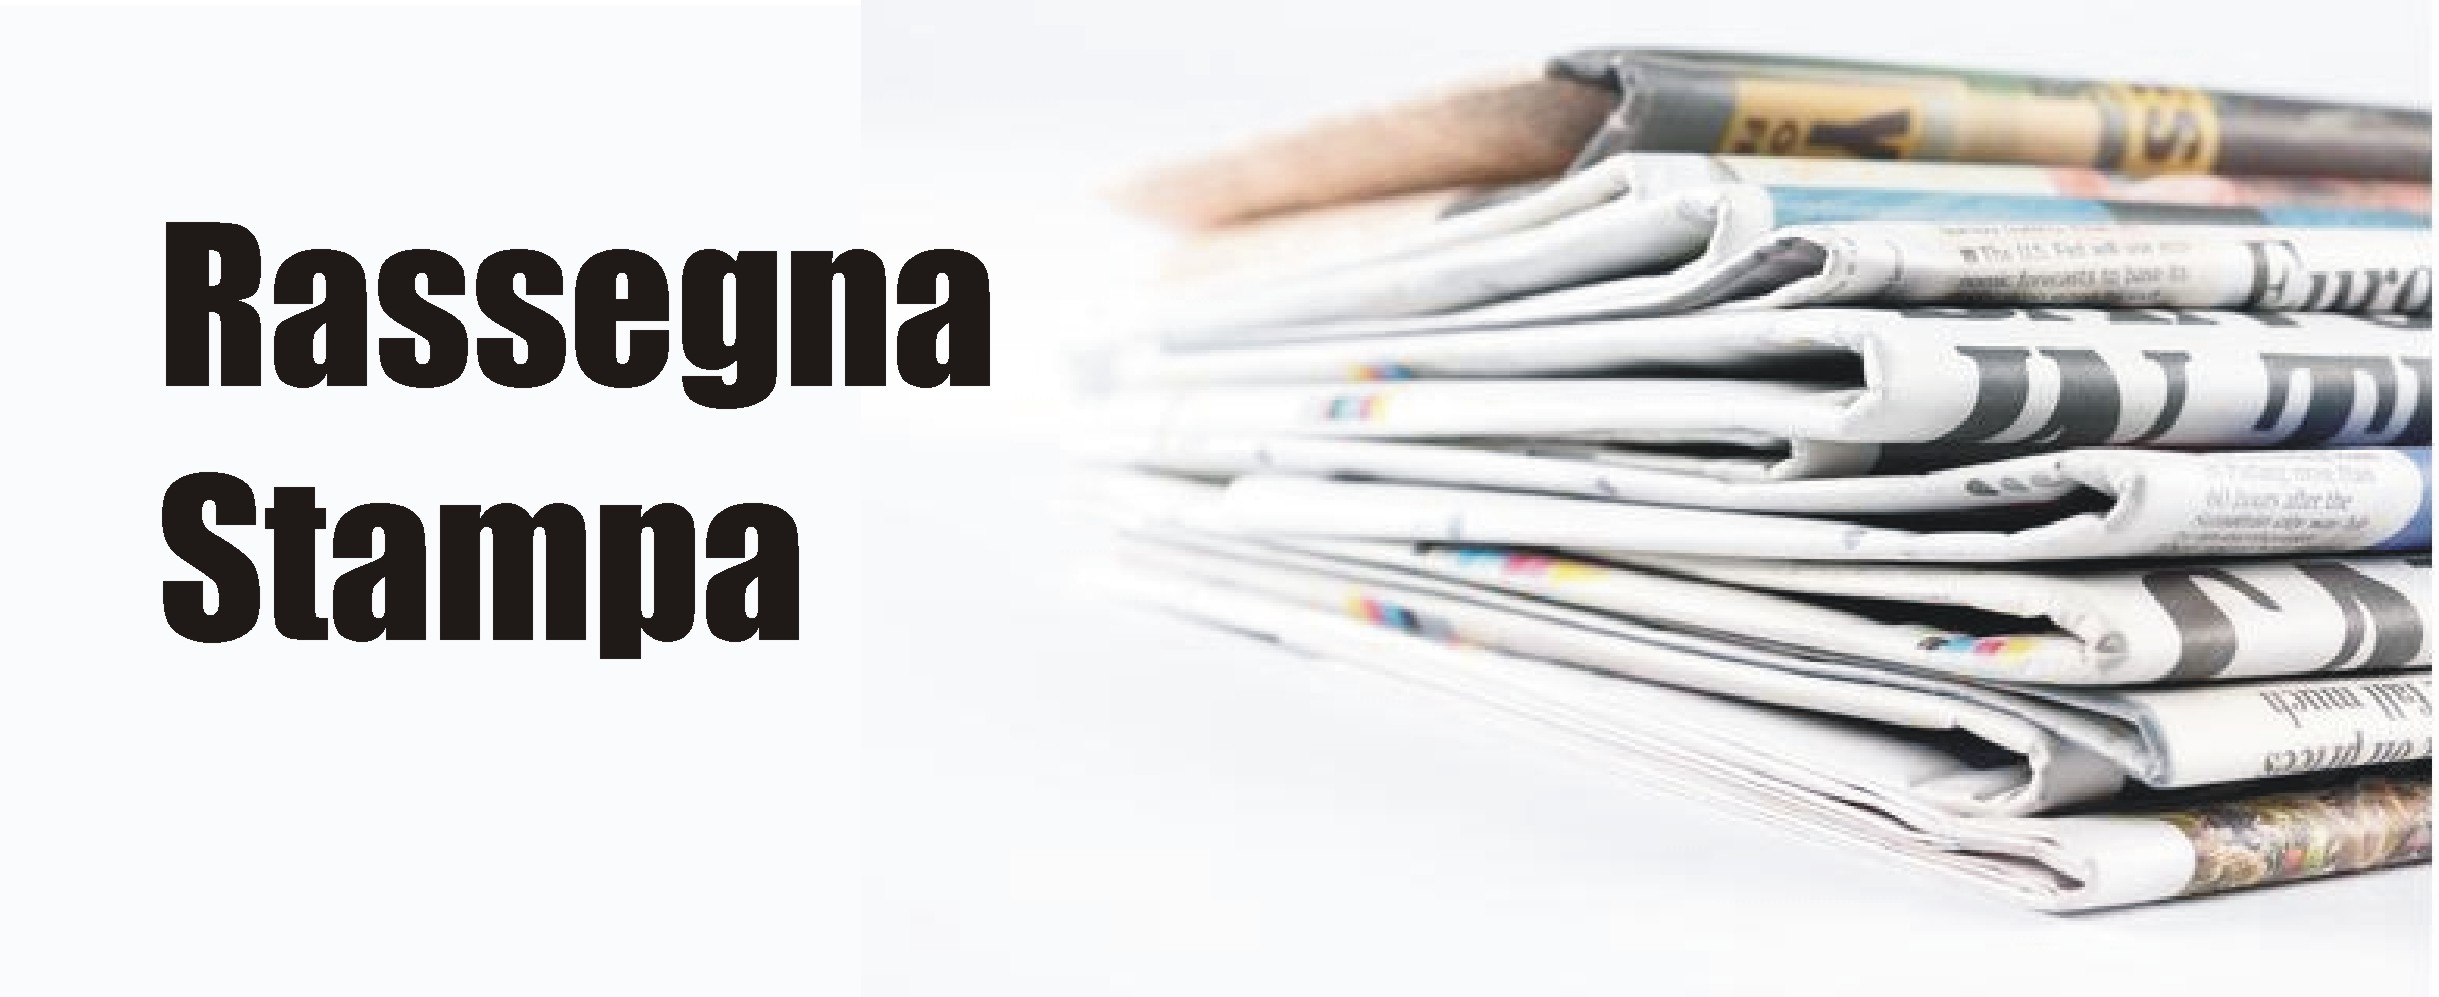 http://www.gildalucca.it/rassegna-stampa-2/